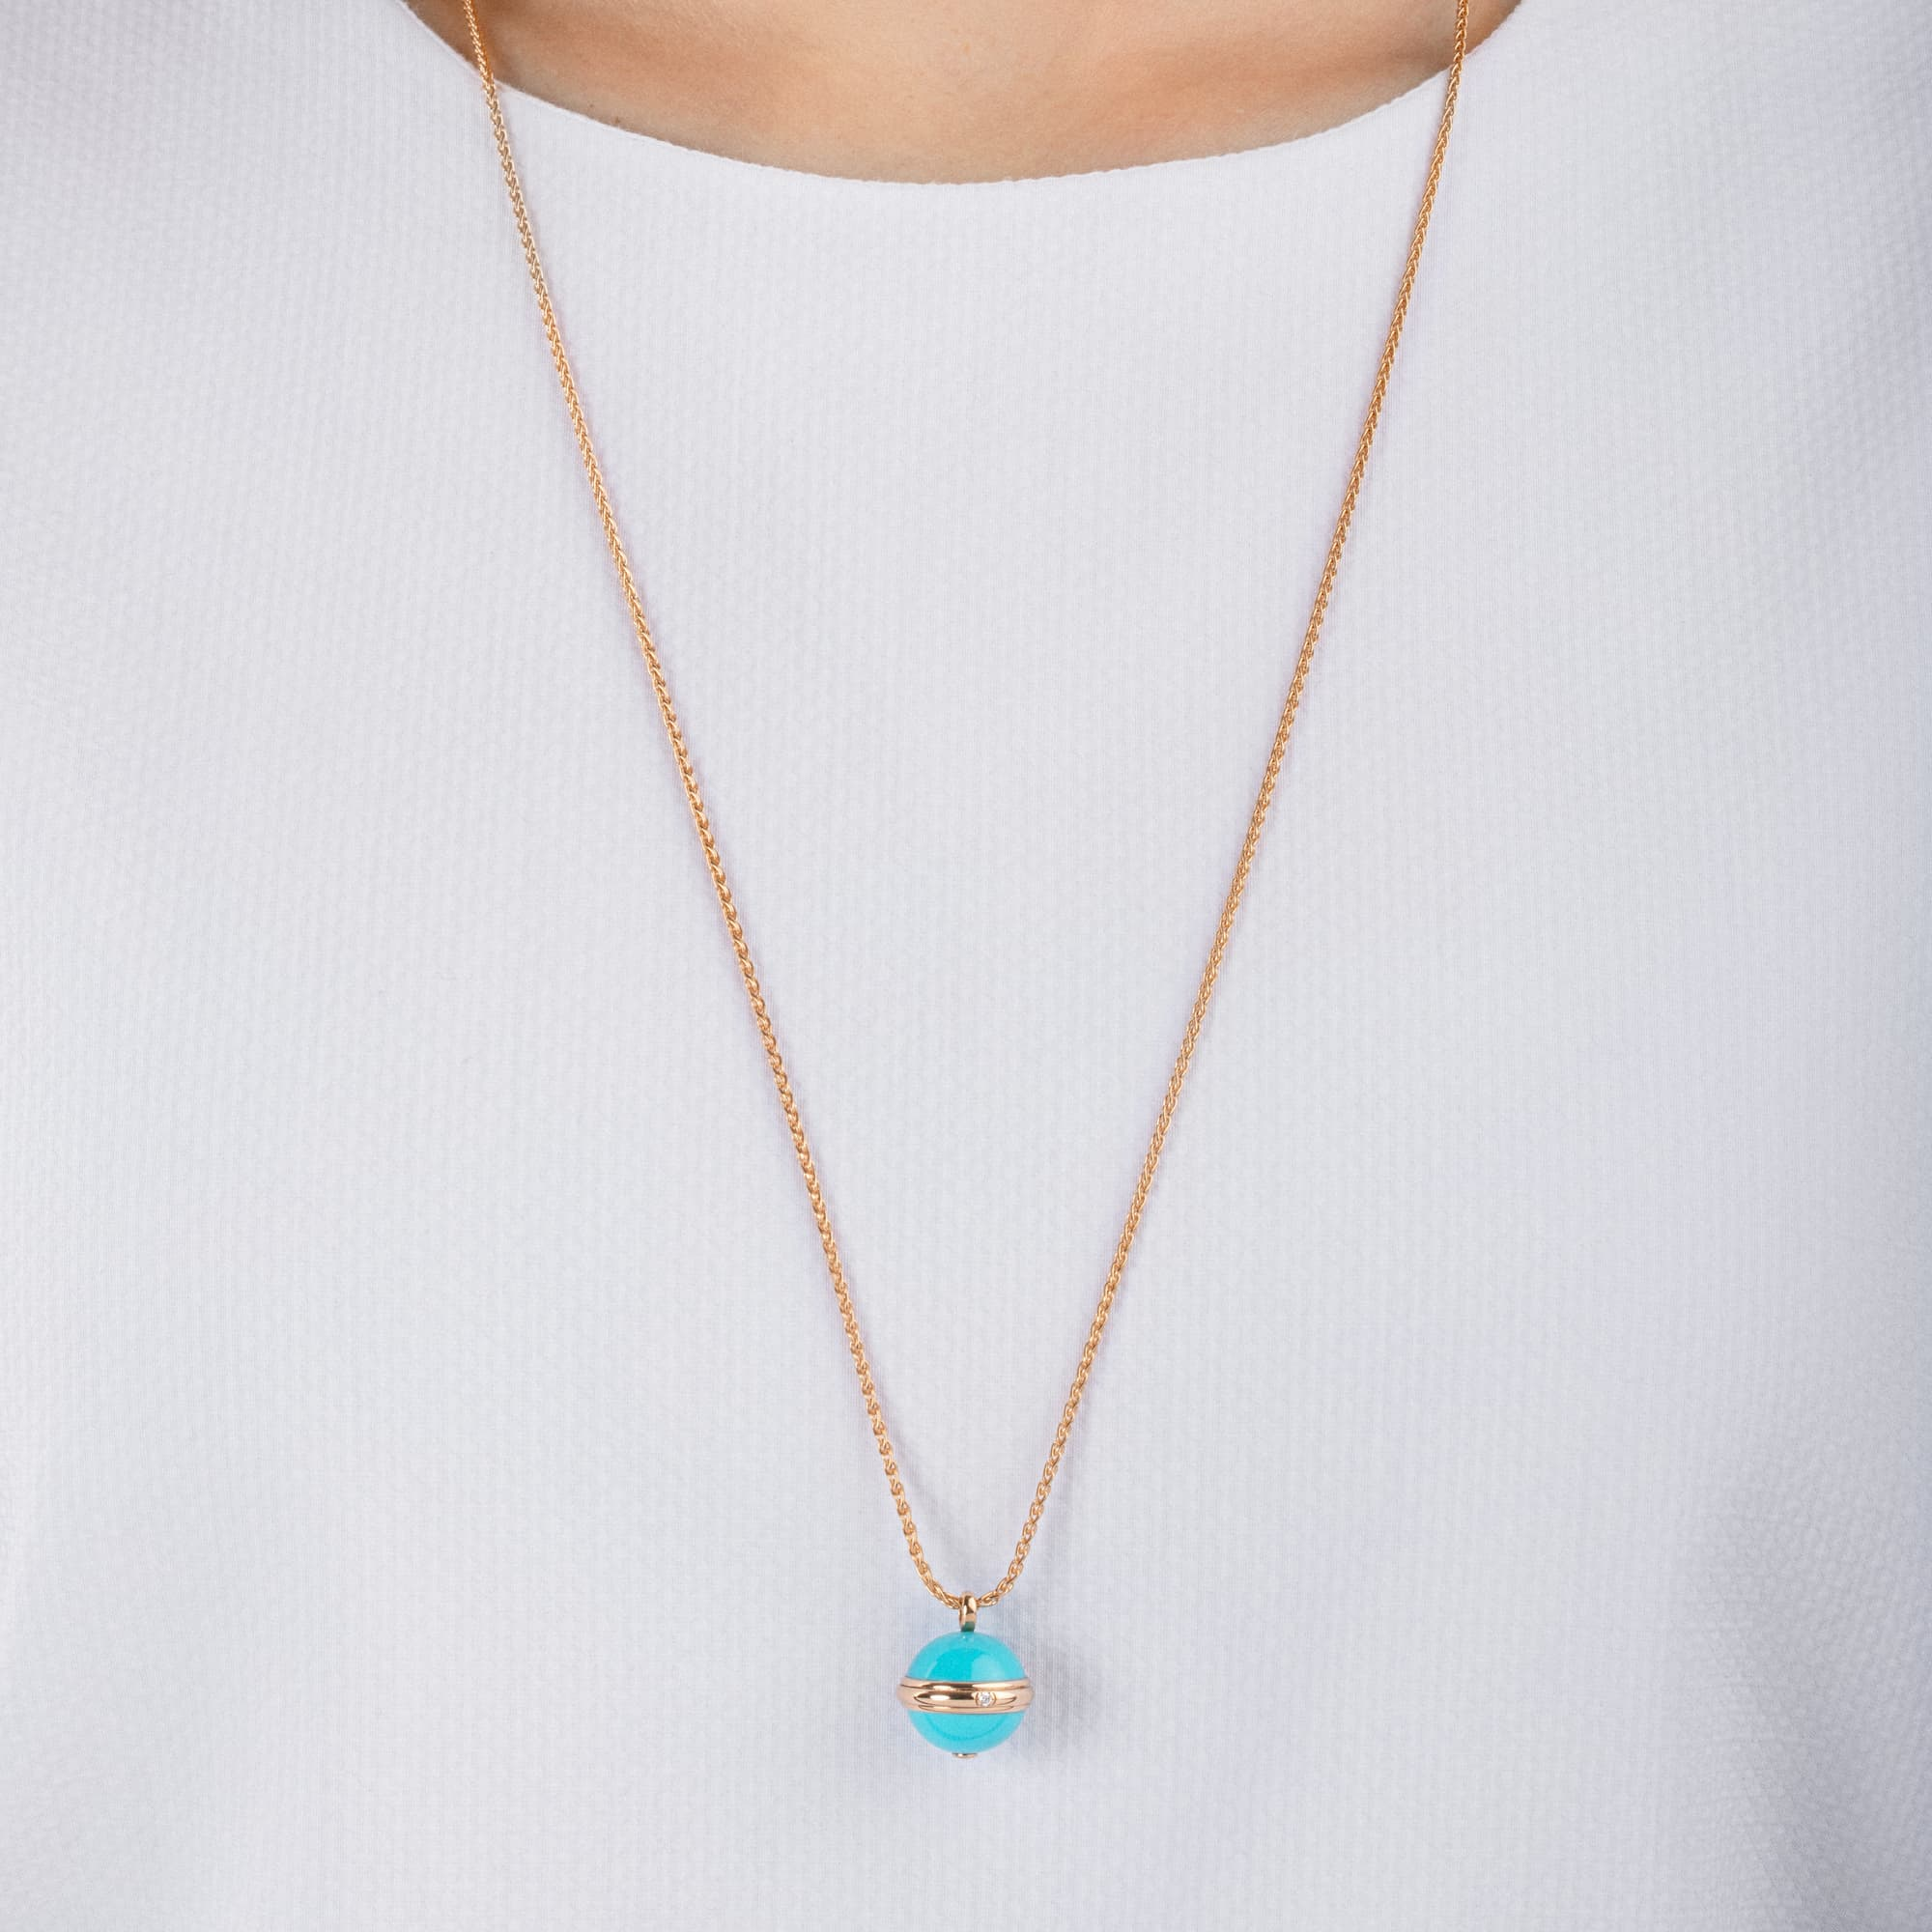 Sold  As Pictured OOAK Rose Gold Electroplated Stabilized Chinese Turquoise Freeform Shaped Two Loop Pendant 065 ~ 65mm x 38mm